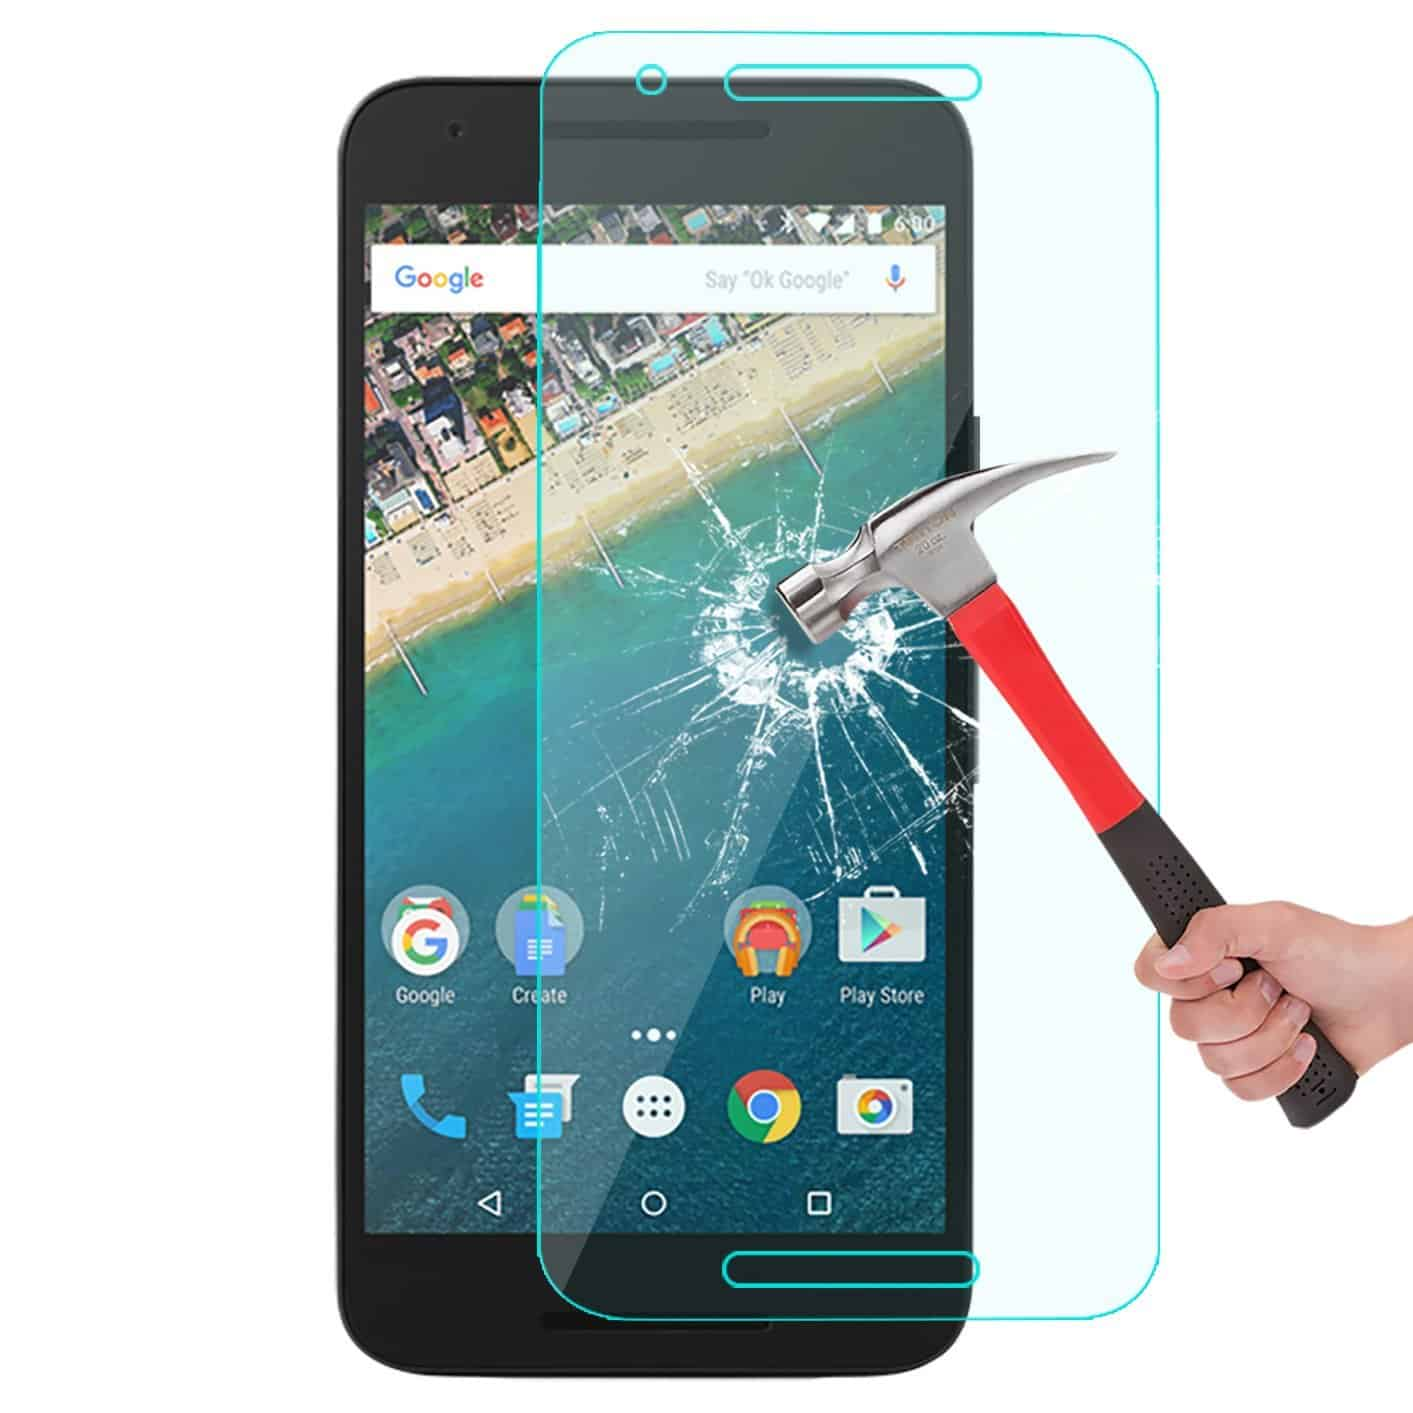 This is another great tempered glass screen protector here, this time from OMOTON. Now